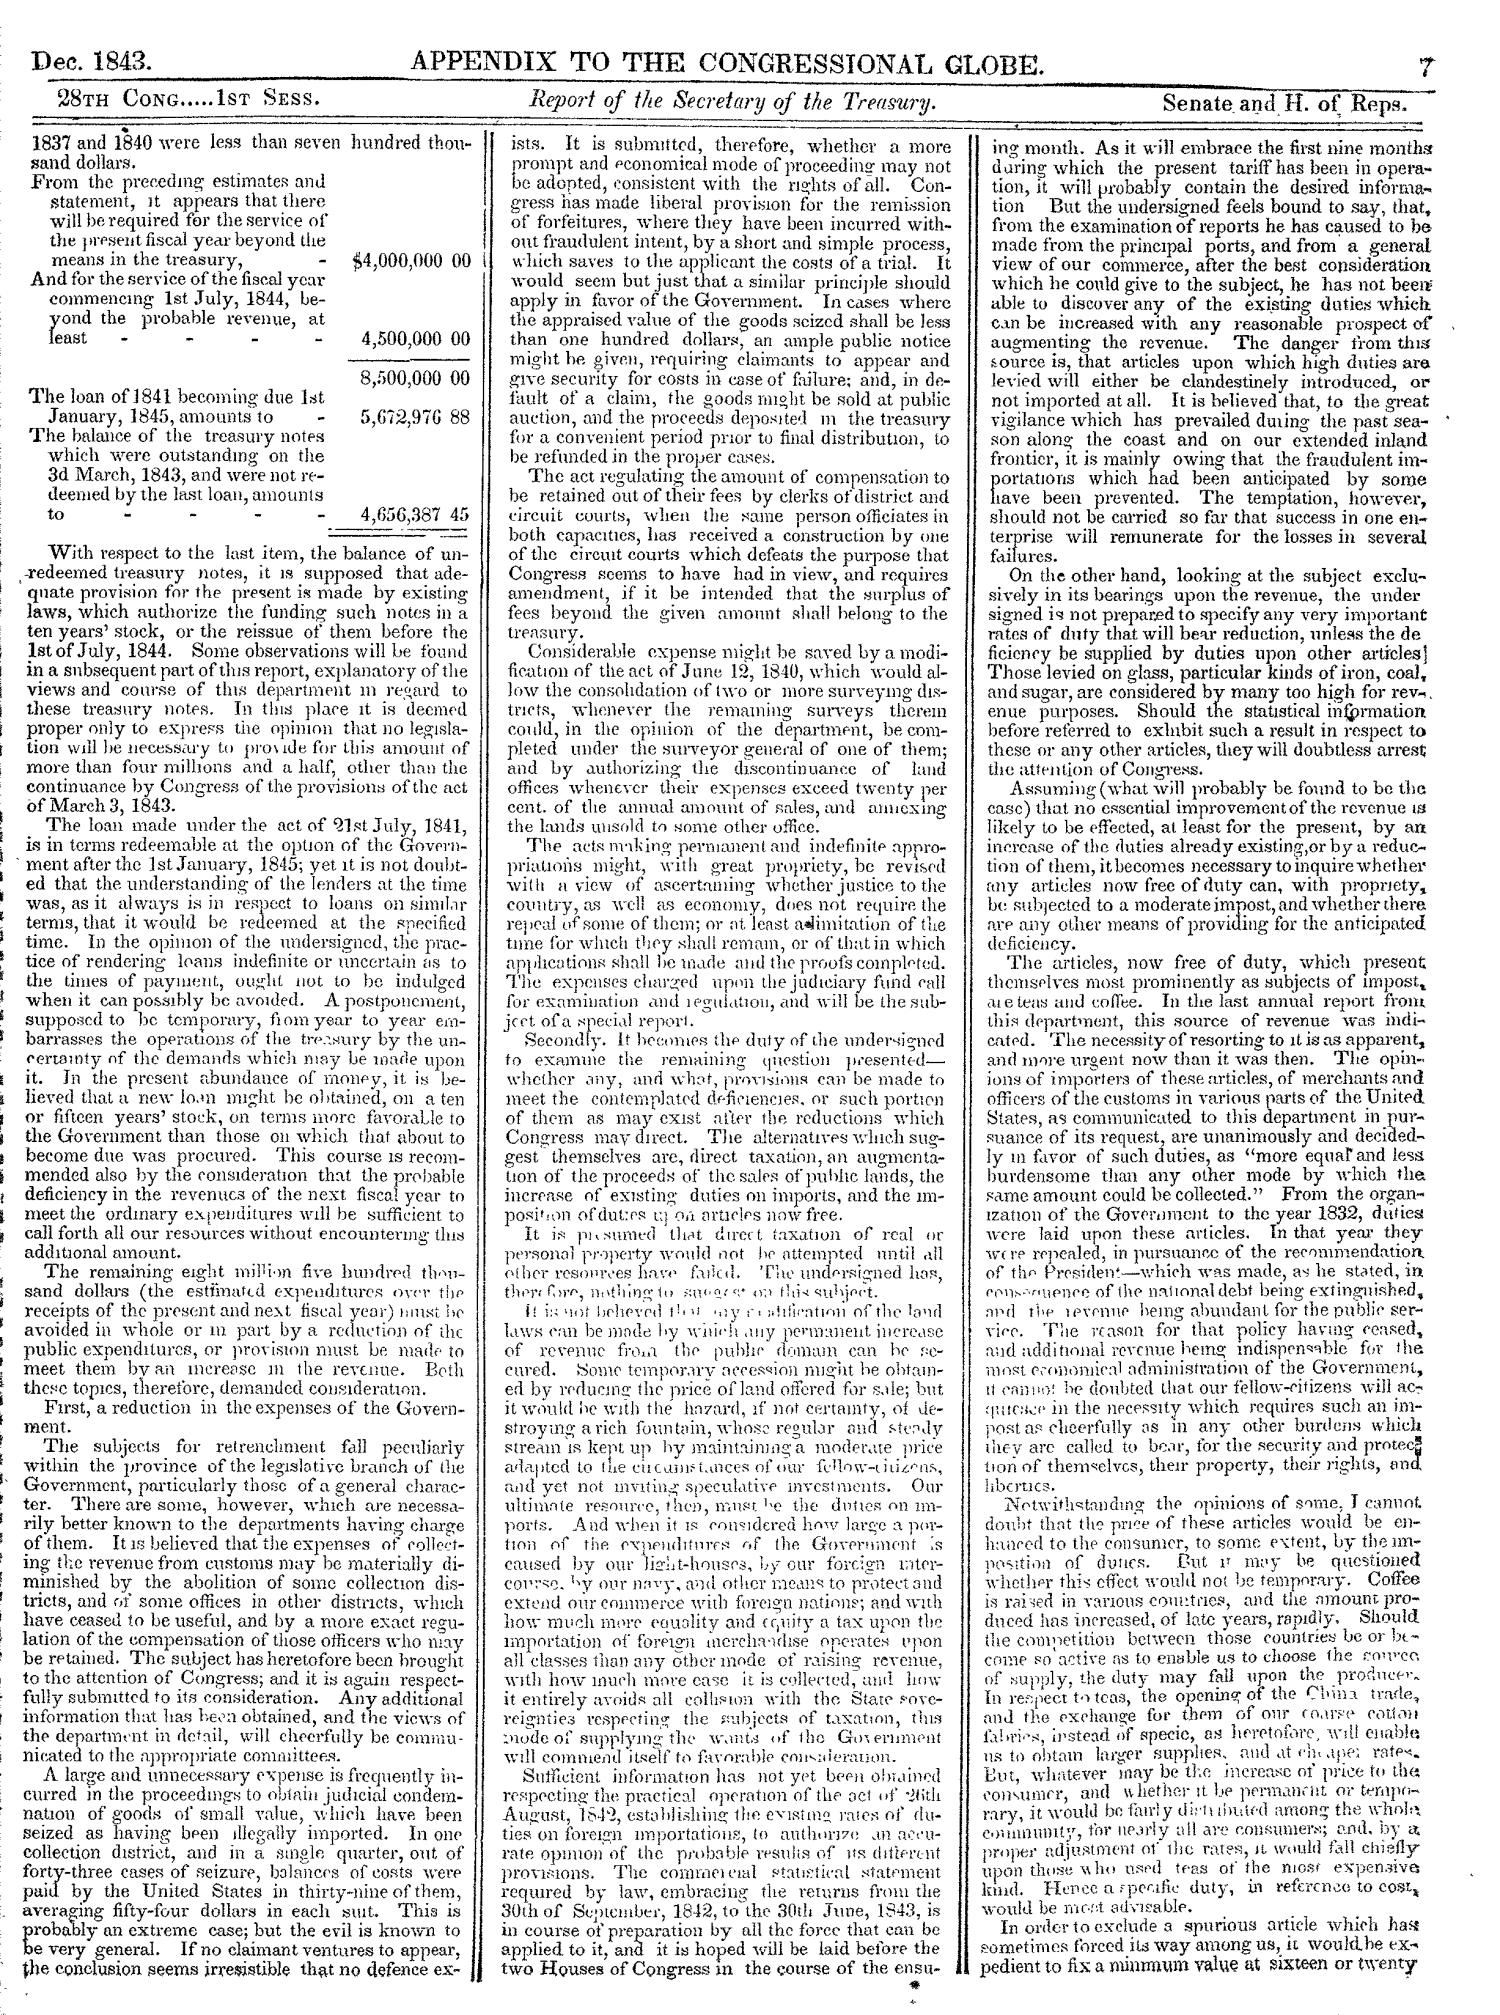 The Congressional Globe, Volume 13, Part 2: Twenty-Eighth Congress, First Session                                                                                                      7